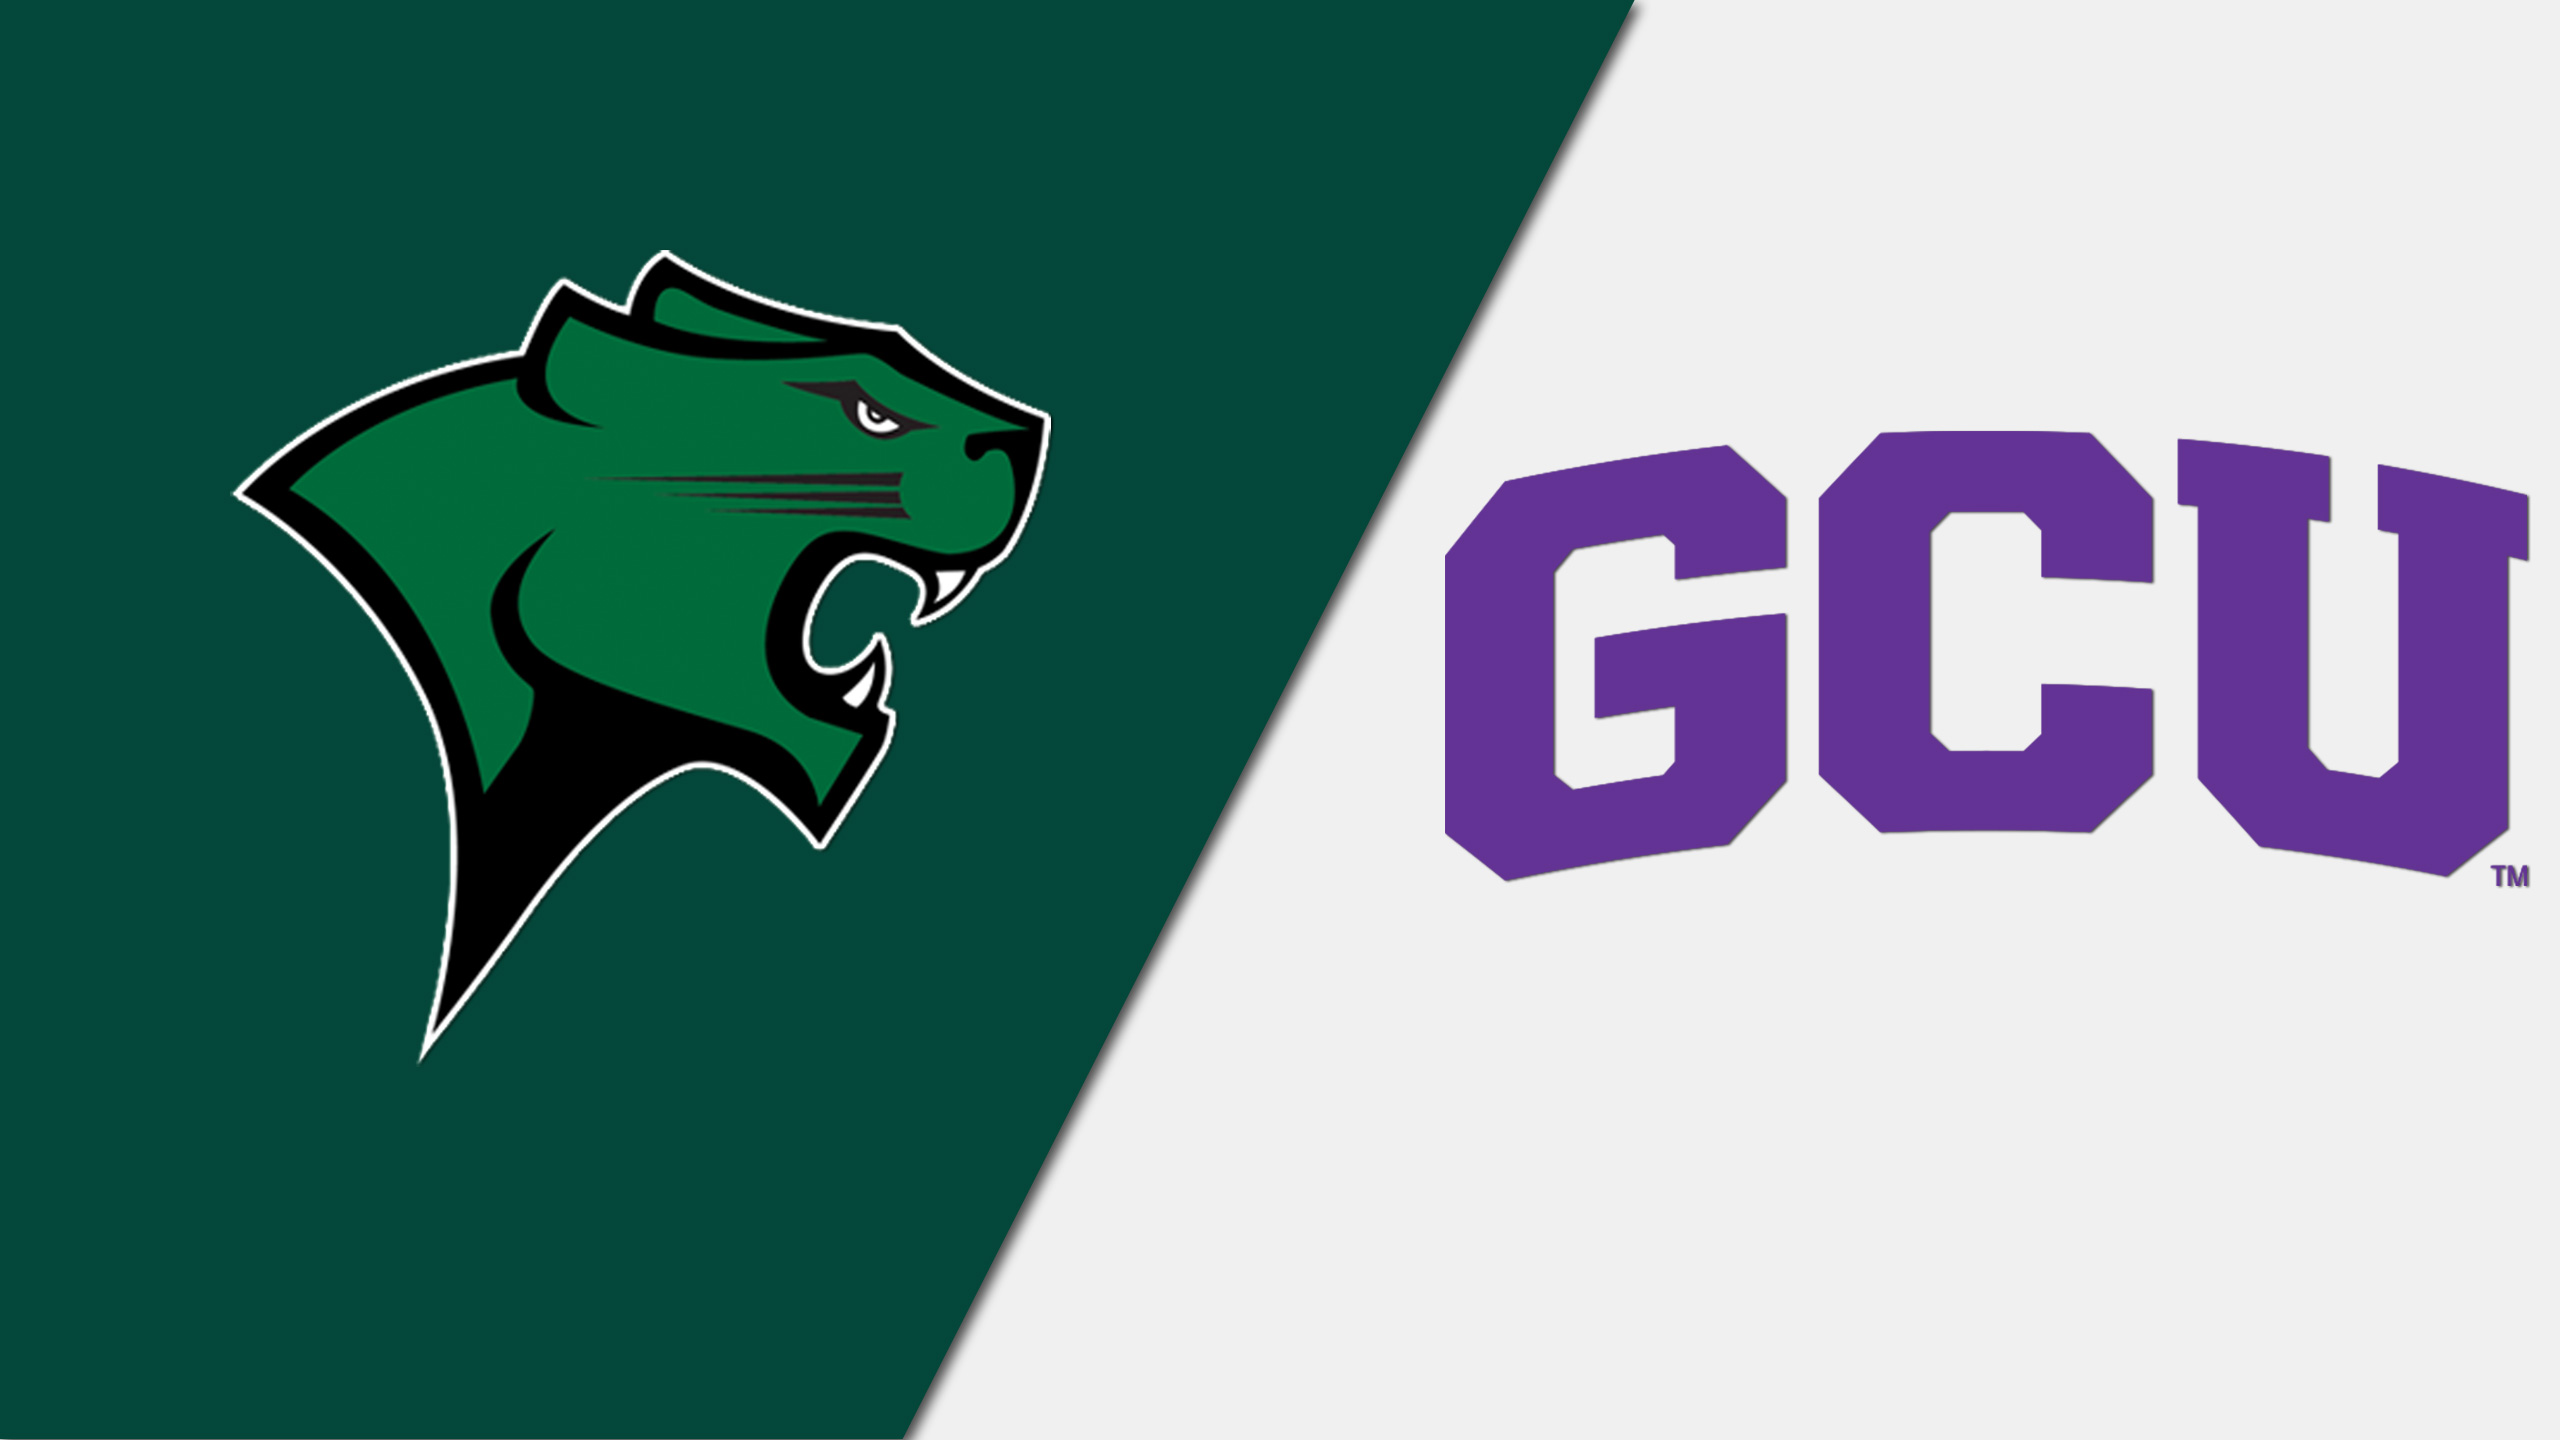 Chicago State vs. Grand Canyon University